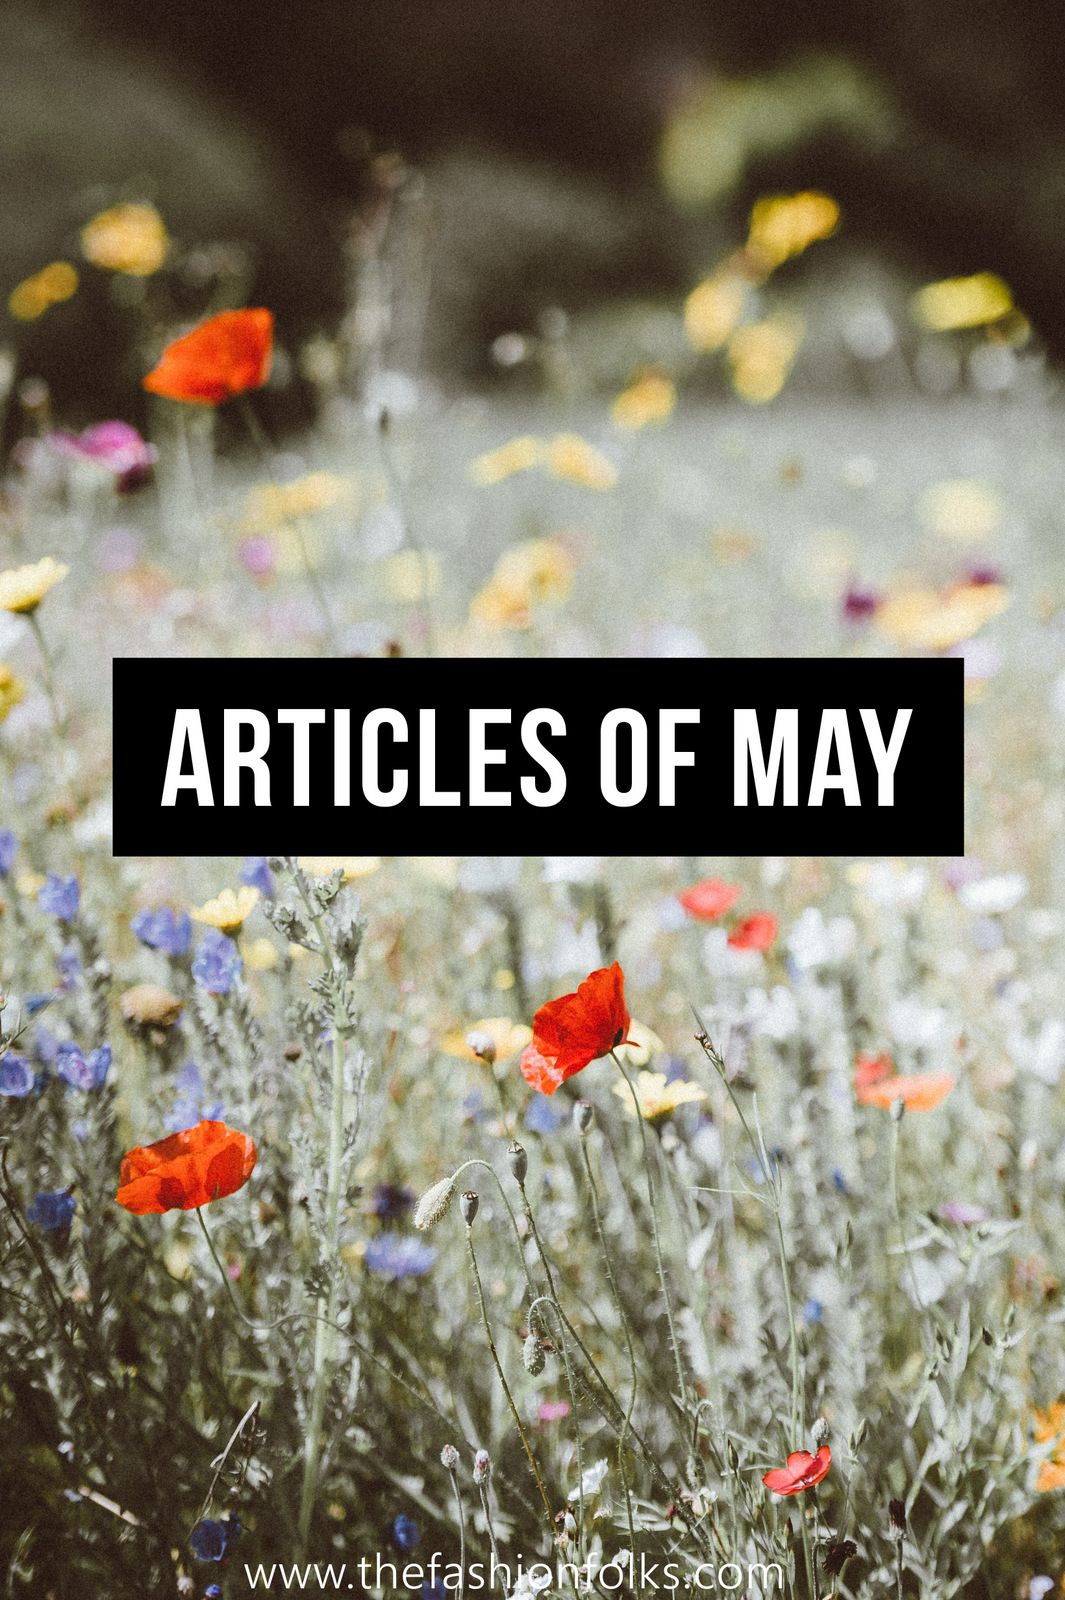 Articles of May 2018